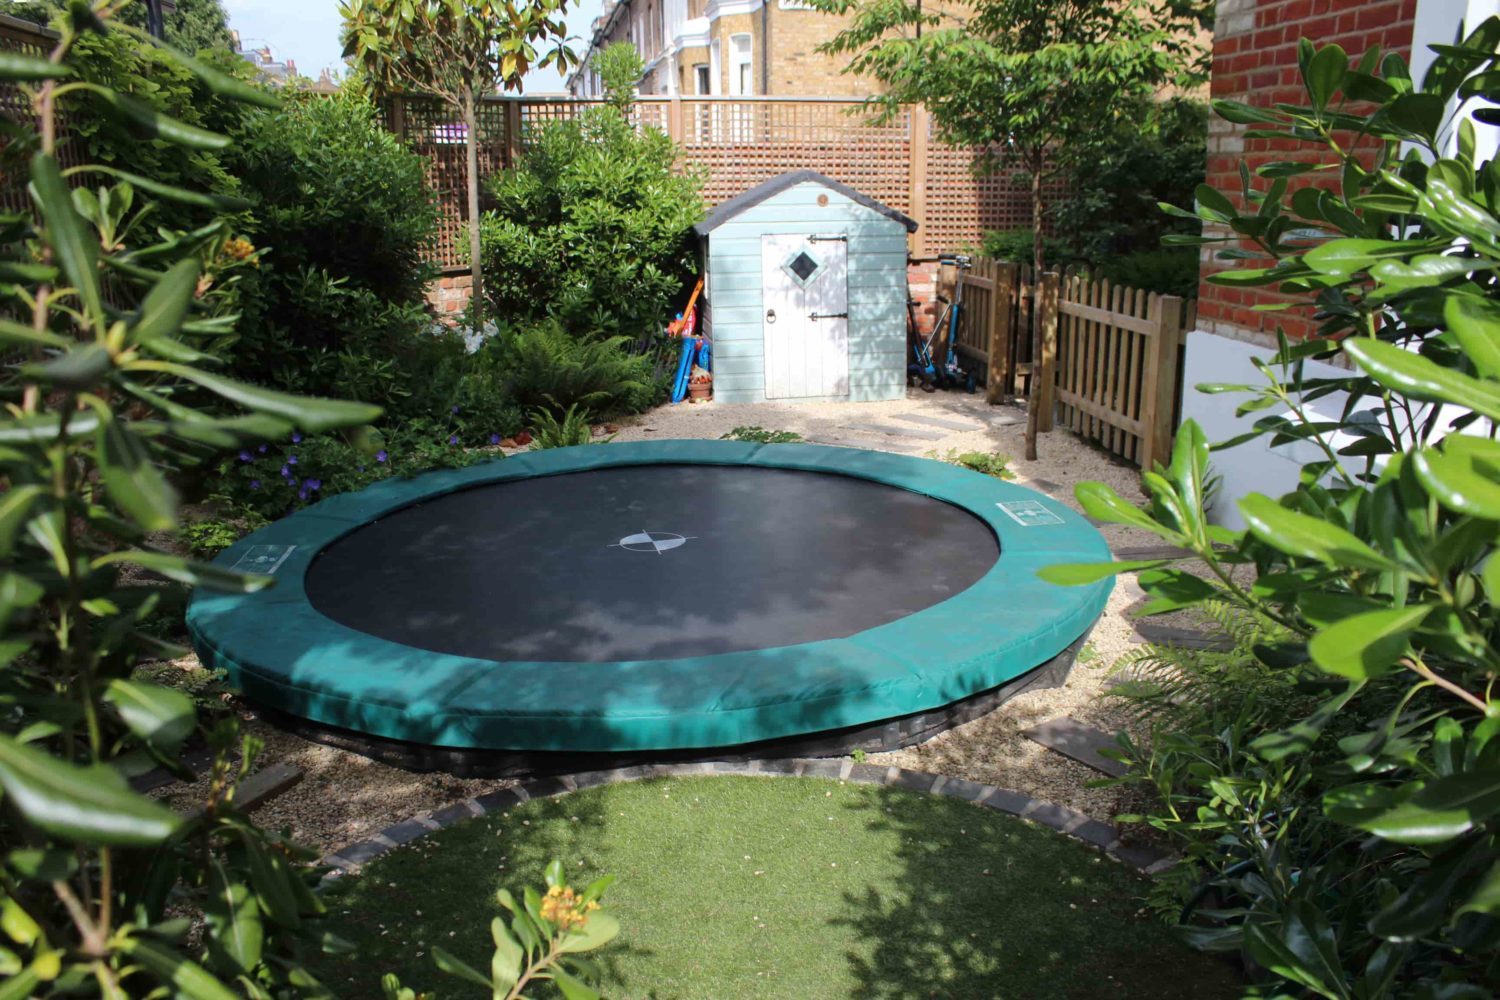 Garden design living colour gardens for Children friendly garden designs